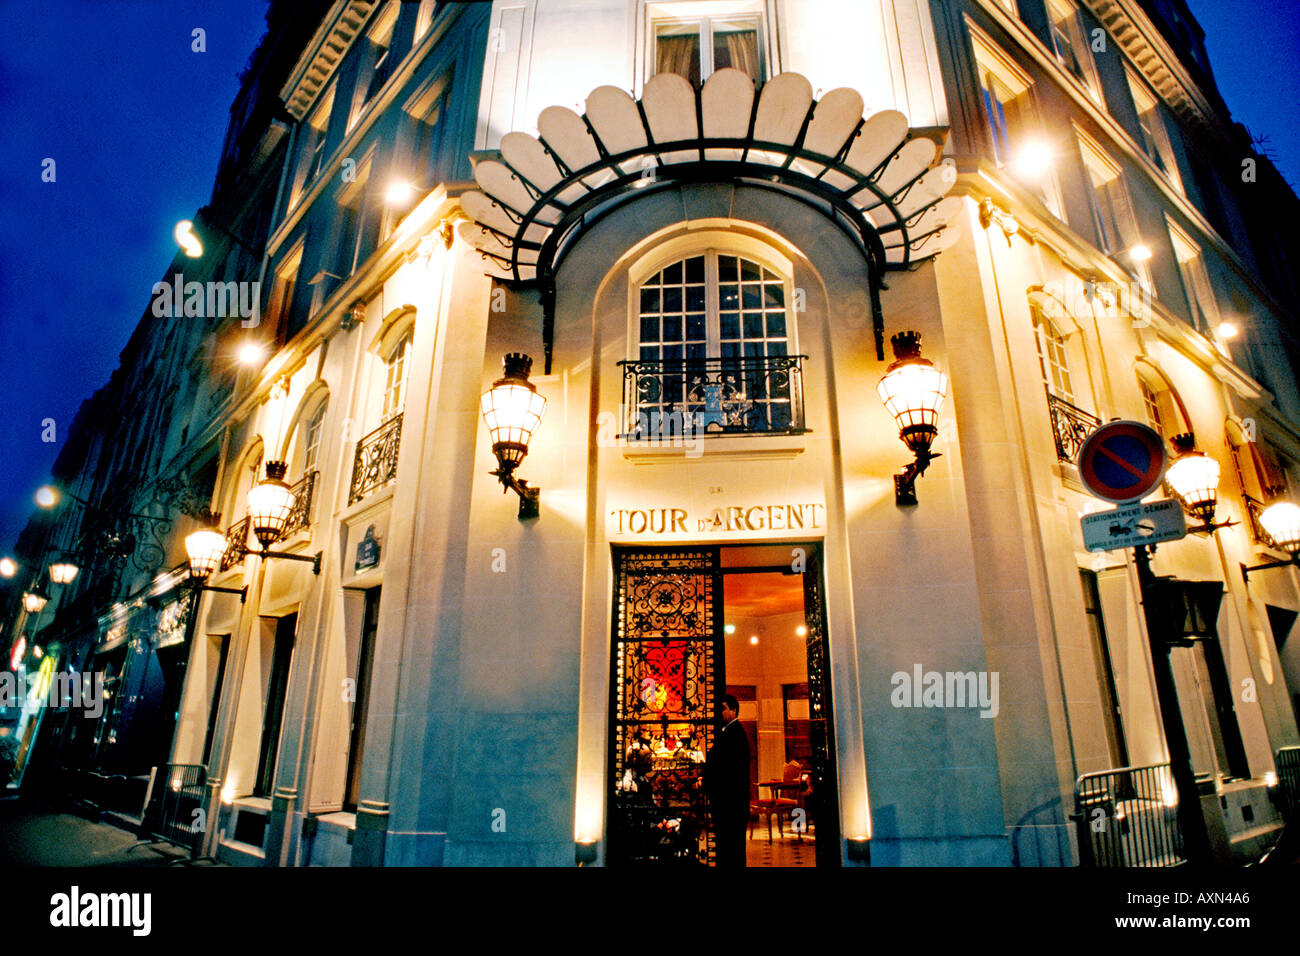 France paris french restaurant la tour d 39 argent haute for Restaurant cuisine francaise paris